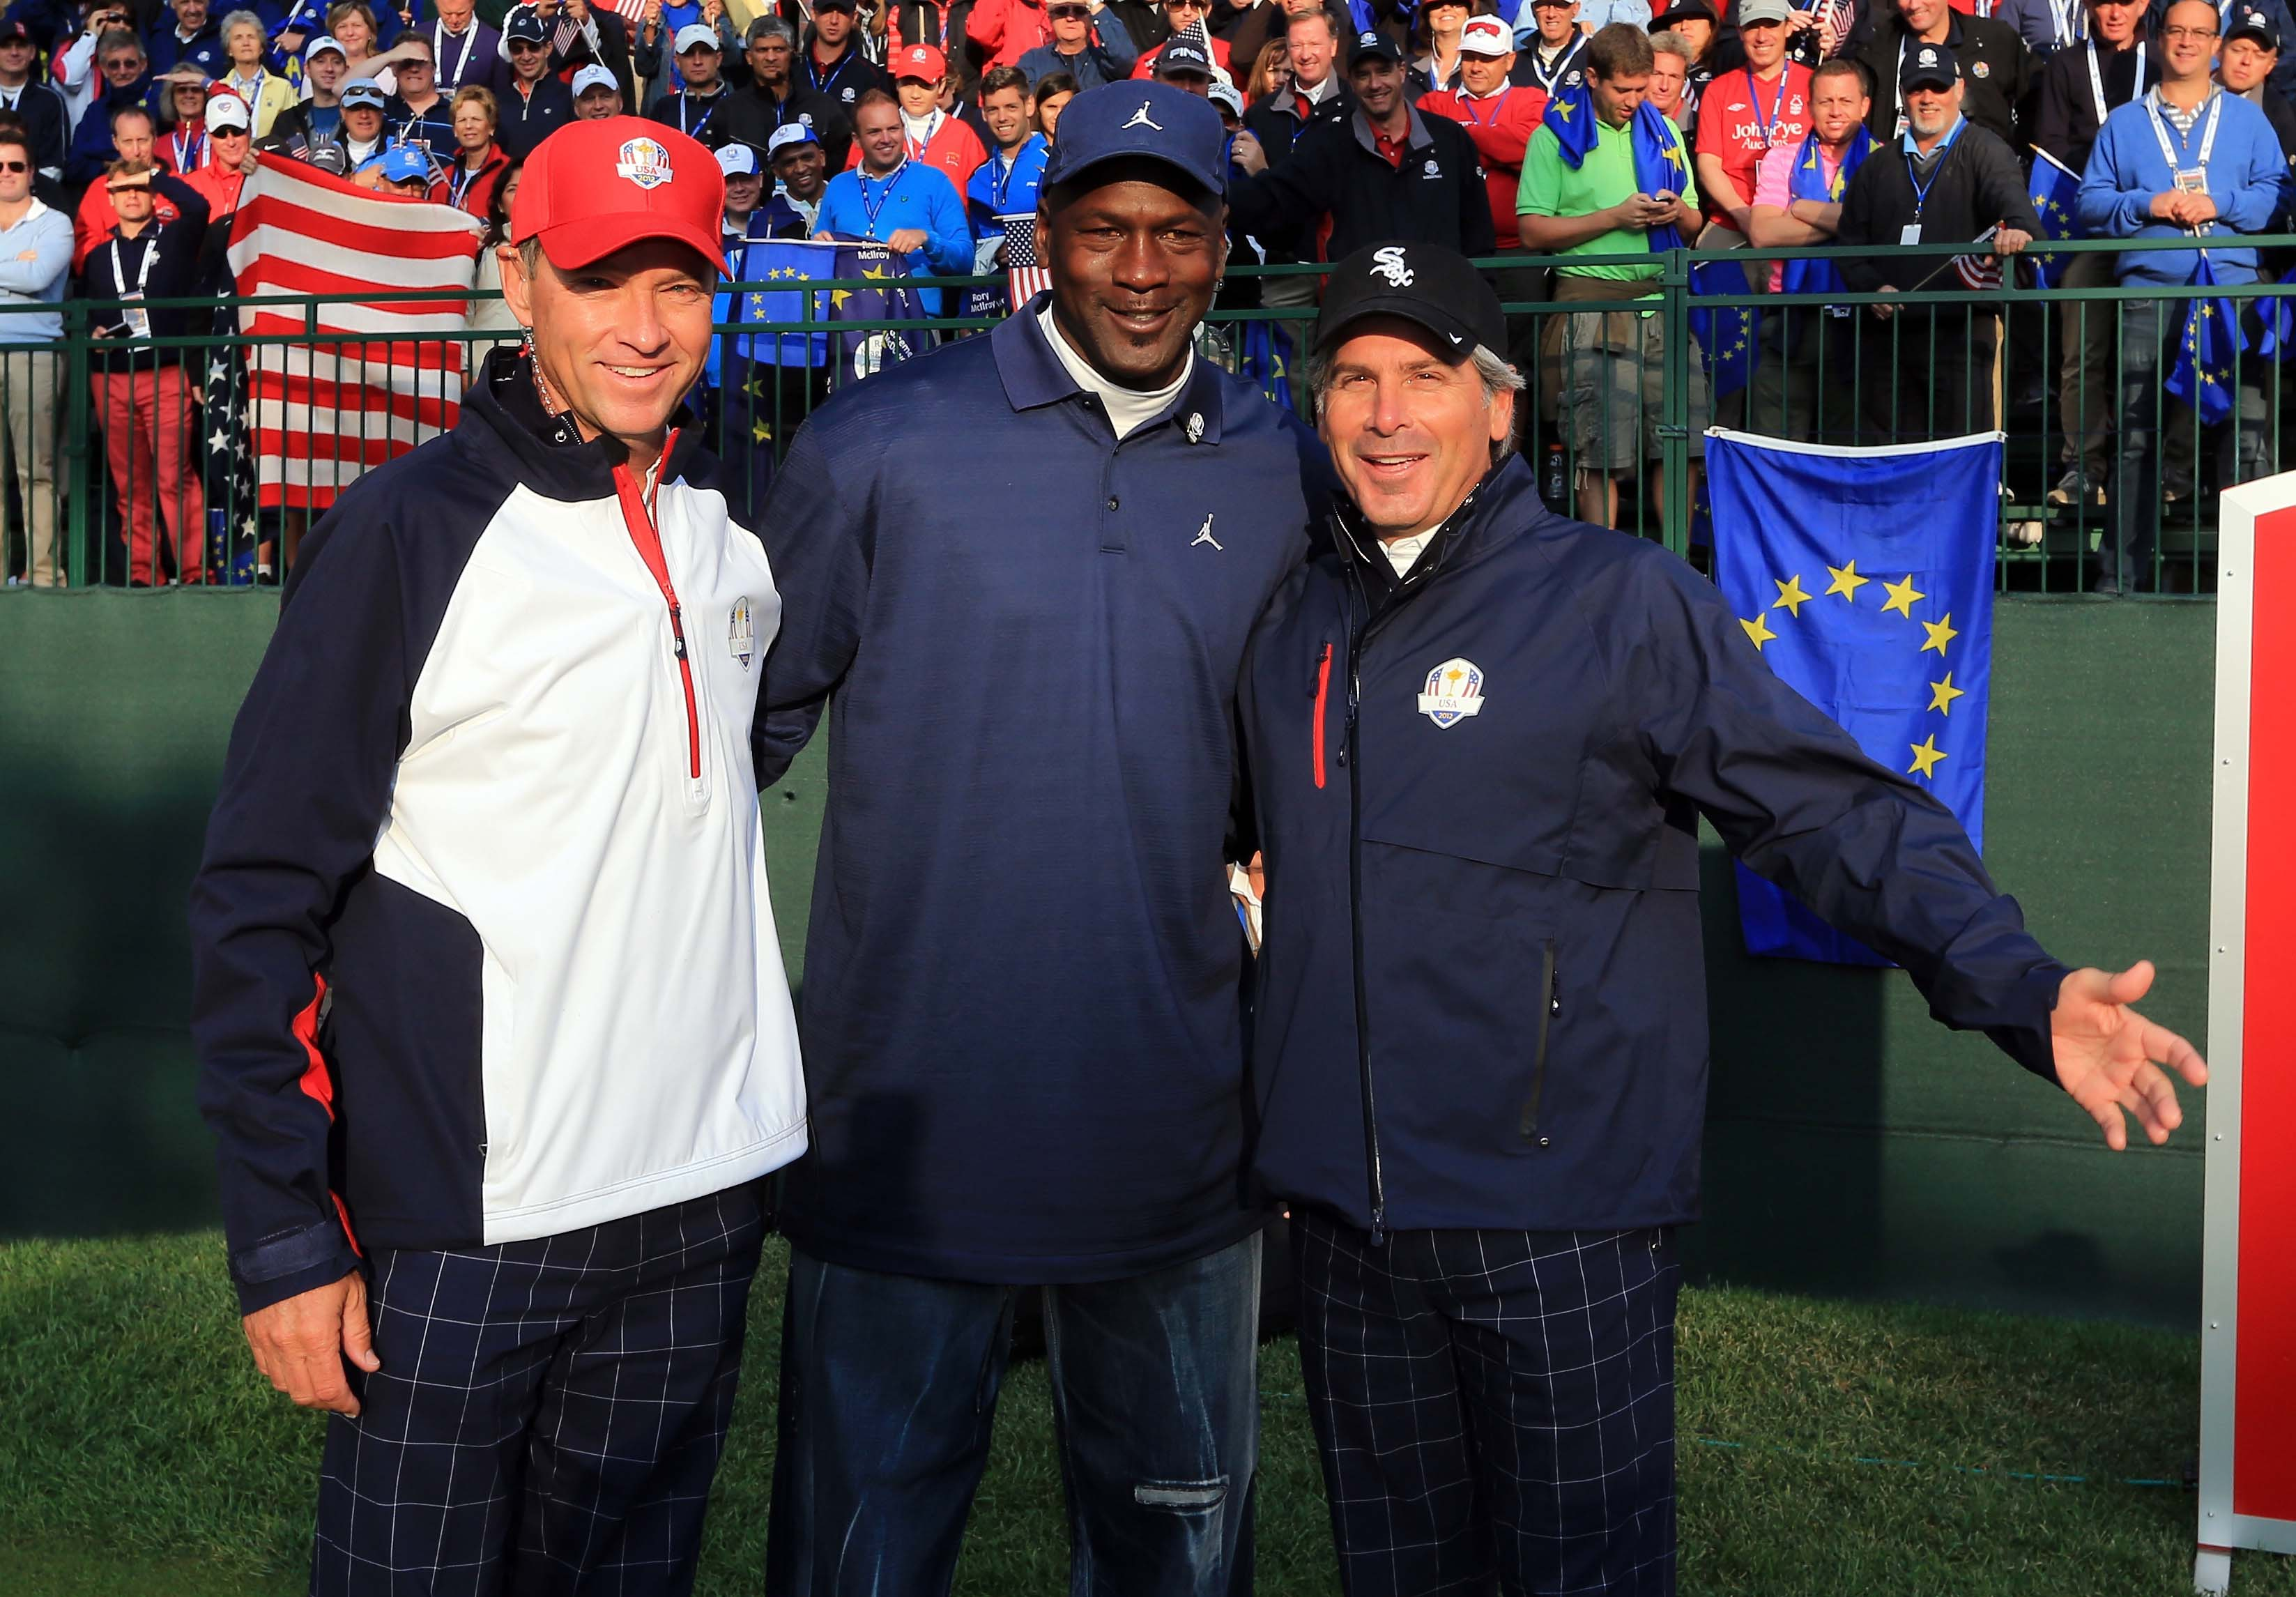 Michael Jordan, Davis Love III and Fred Couples